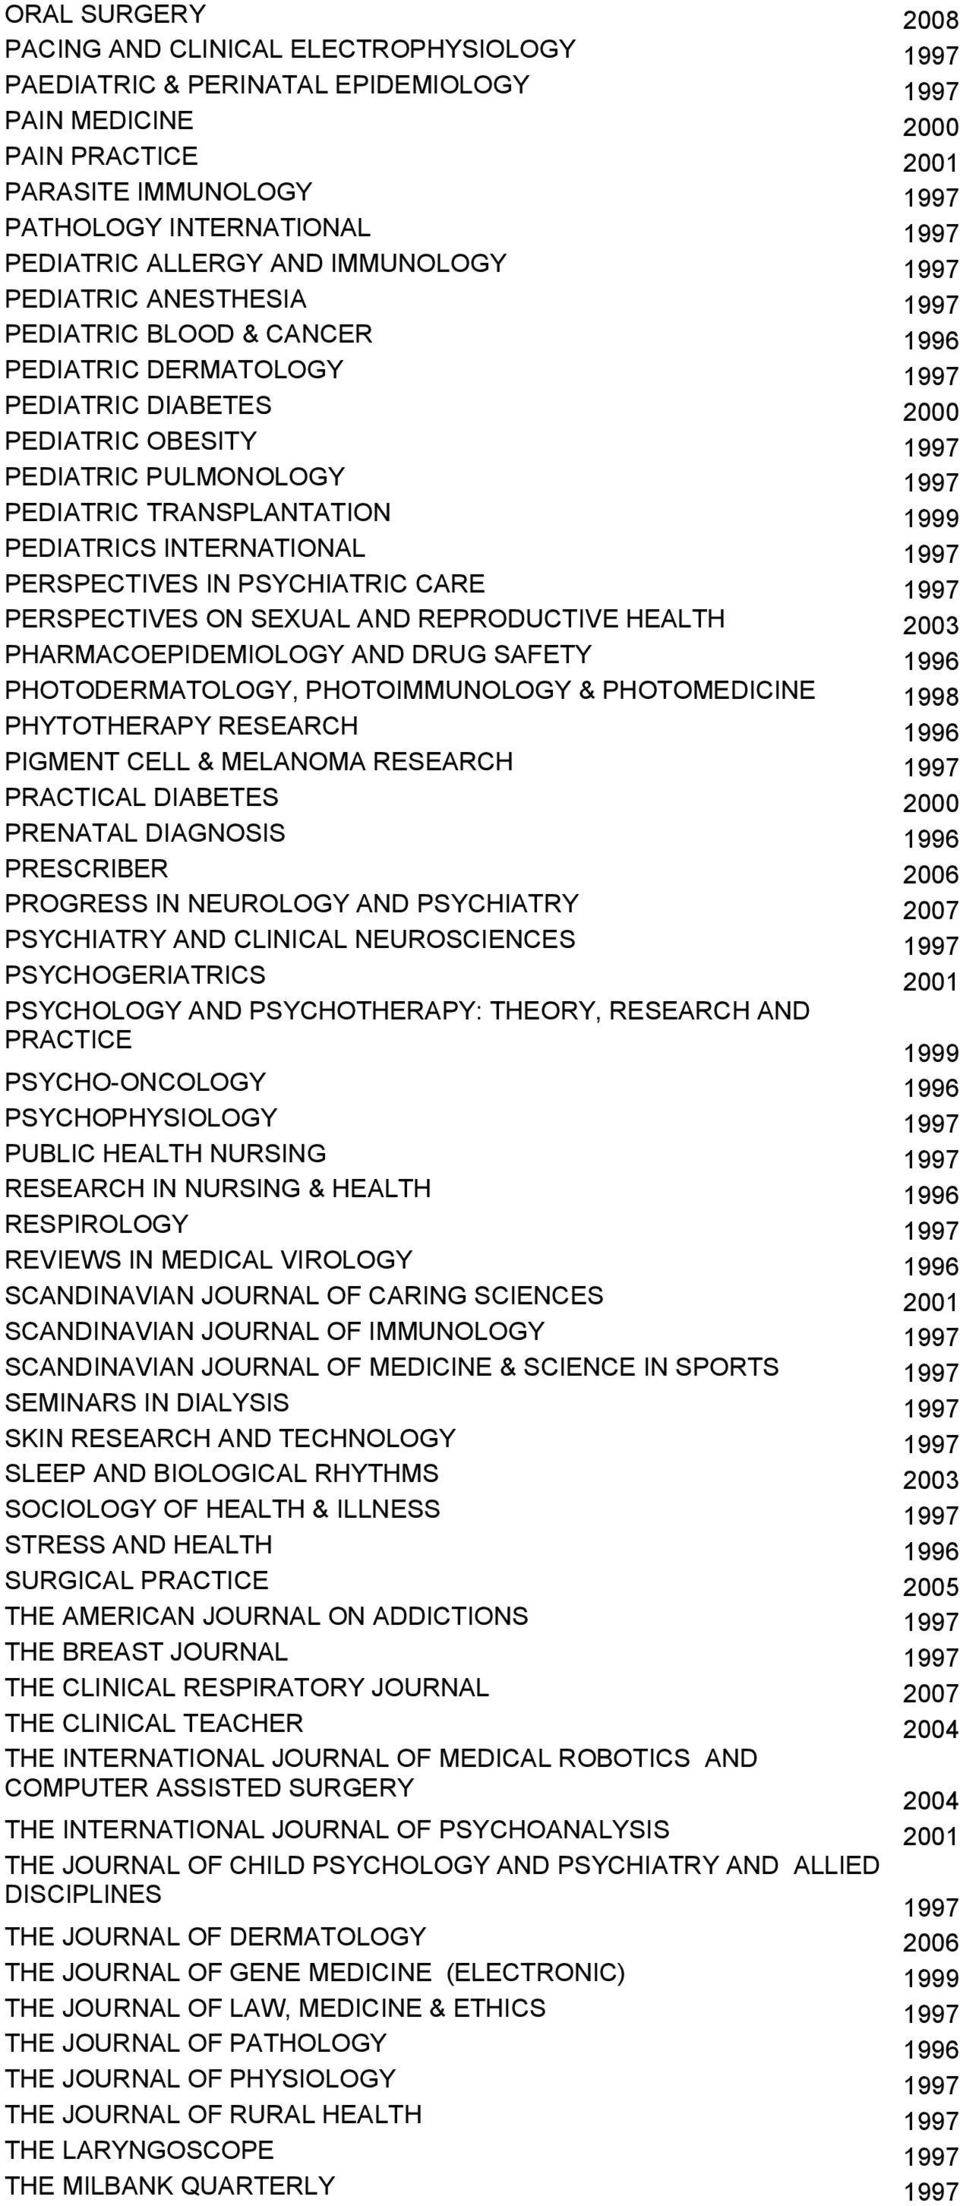 INTERNATIONAL PERSPECTIVES IN PSYCHIATRIC CARE PERSPECTIVES ON SEXUAL AND REPRODUCTIVE HEALTH 2003 PHARMACOEPIDEMIOLOGY AND DRUG SAFETY 1996 PHOTODERMATOLOGY, PHOTOIMMUNOLOGY & PHOTOMEDICINE 1998